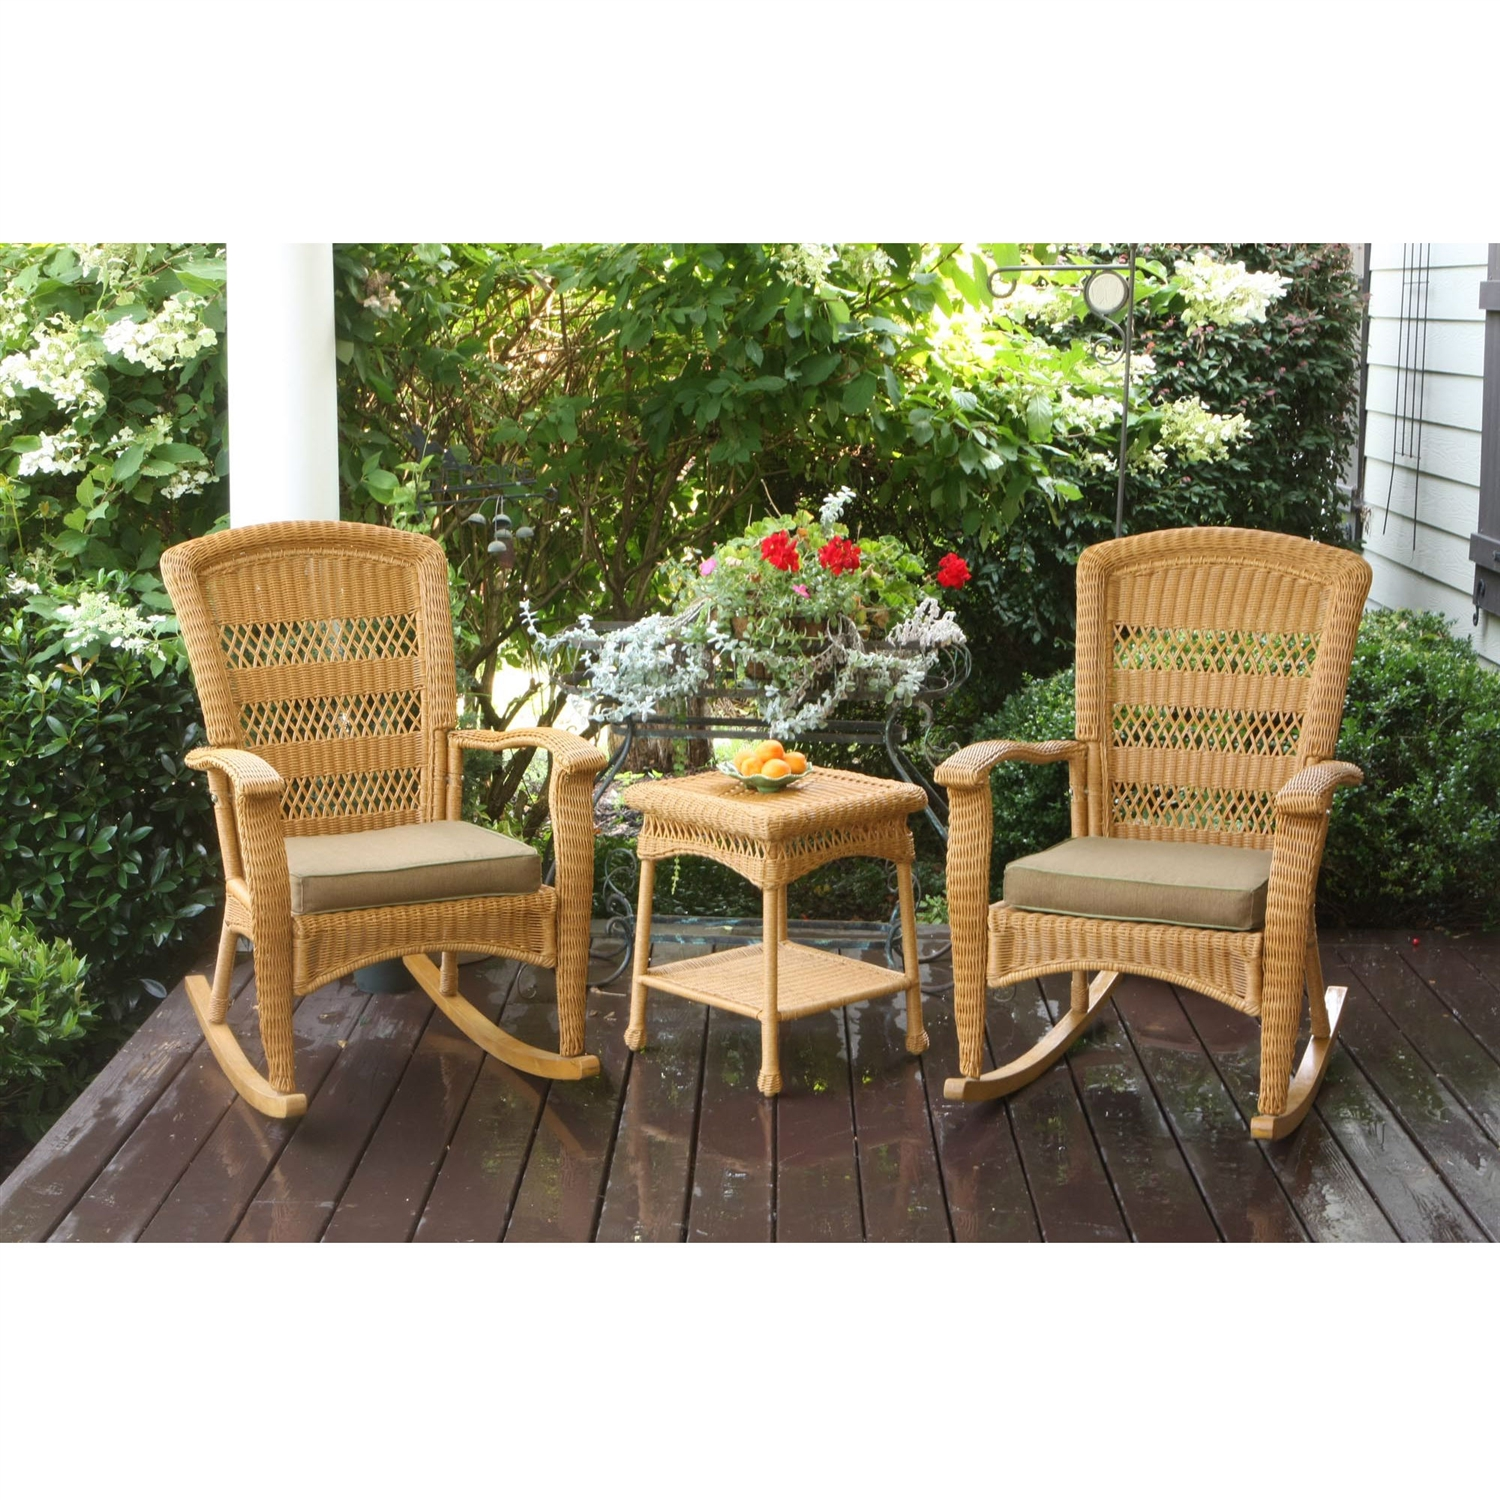 3PC Outdoor Porch Rocker Set w/ 2 Amber Wicker Resin Rocking Chairs & Table, T3PR46377 :  This 3PC Outdoor Porch Rocker Set w/ 2 Amber Wicker Resin Rocking Chairs & Table would be a great addition to your home. It has a wicker resin and a contemporary style. Glider: No; Cushions are included; Product Type: Seating group; Assembly Required: Yes; Product Warranty: 1 Year limited; Frame Material: Aluminum.